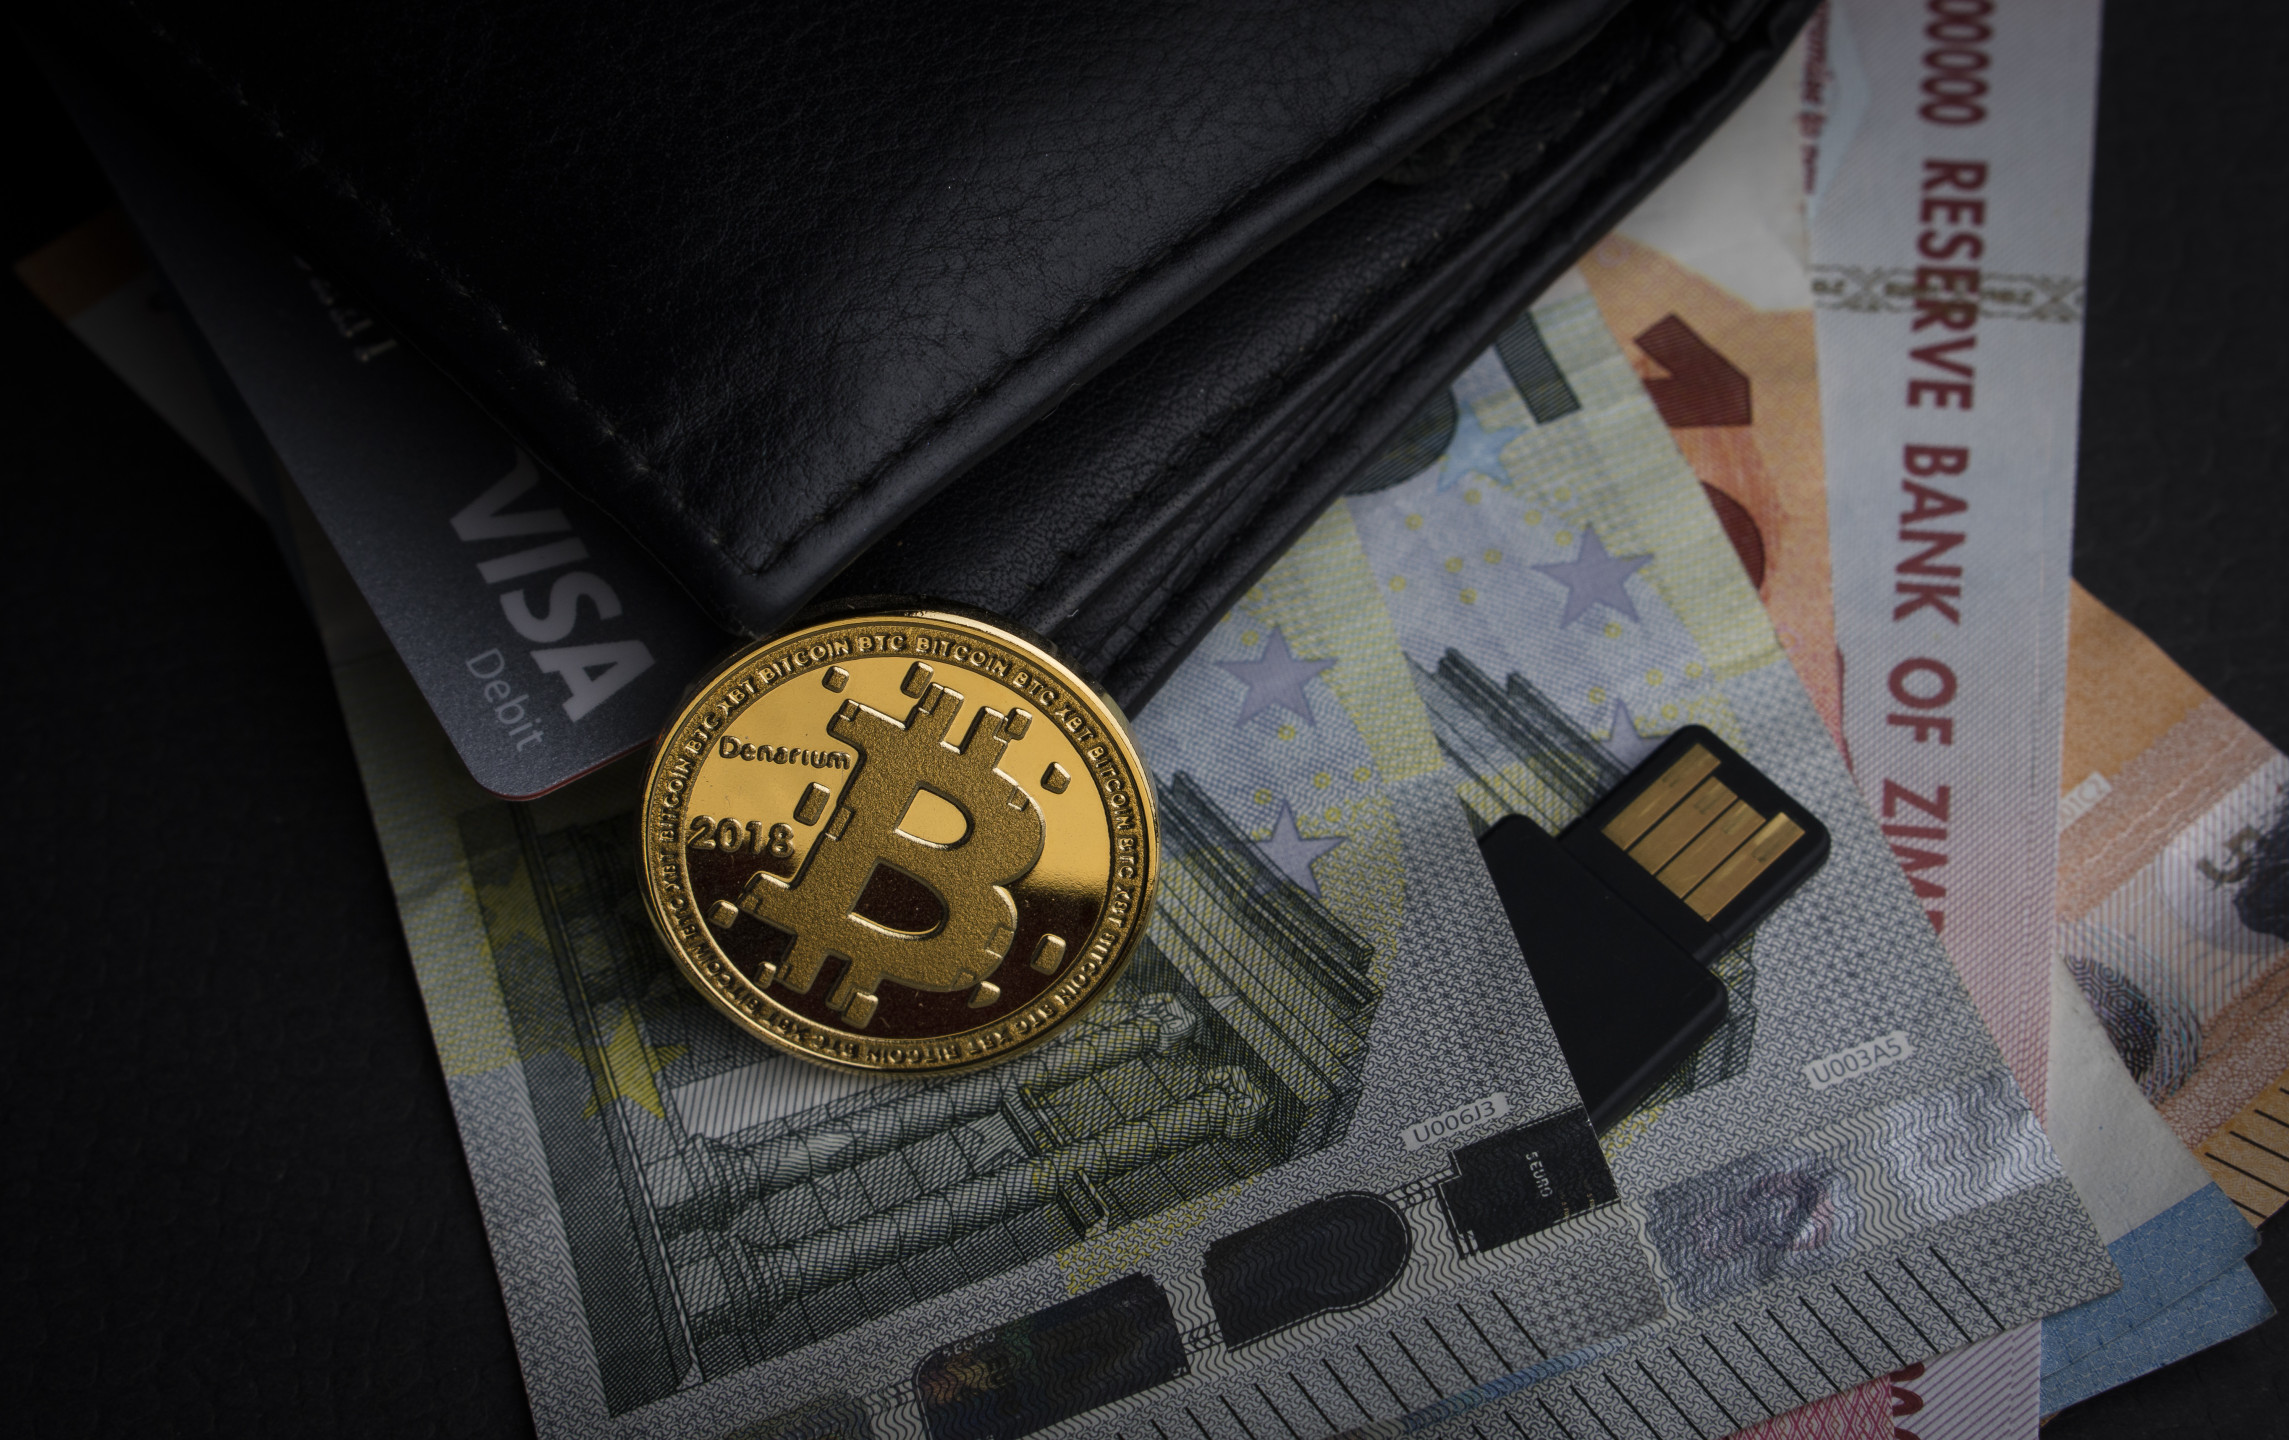 Telecom giant AT&T accepts Bitcoin payments